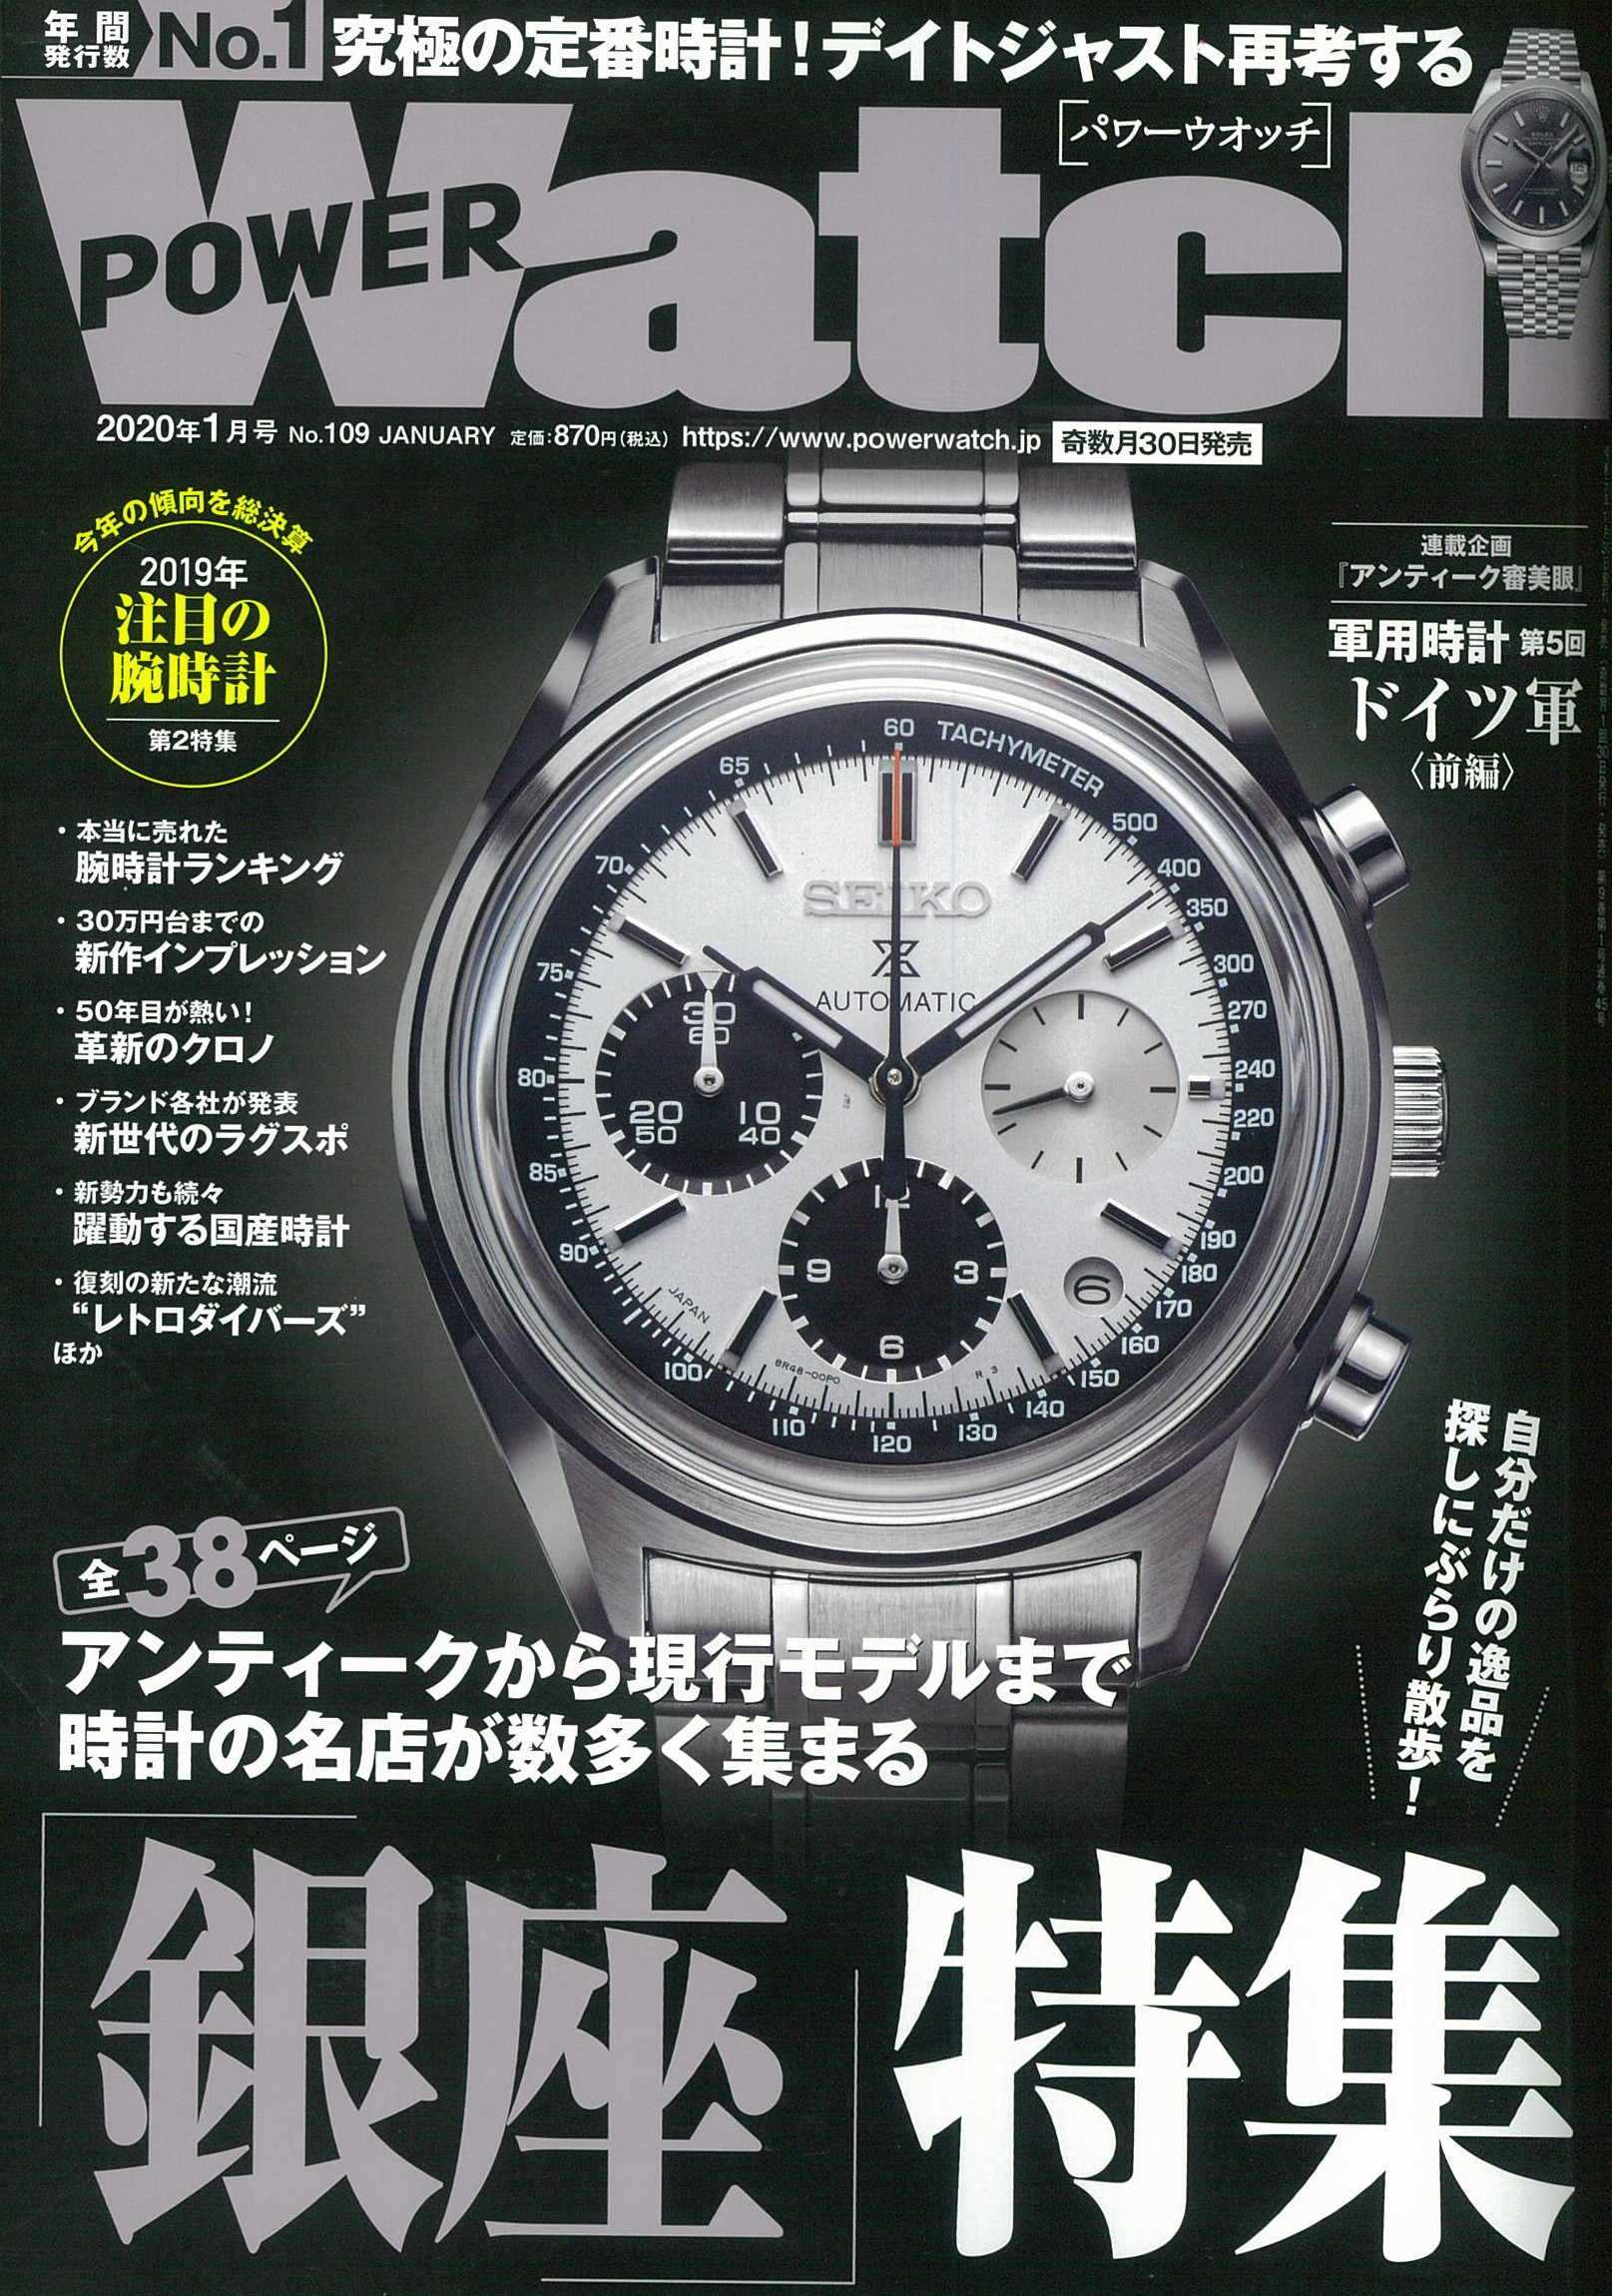 11.30_POWER Watch_1月号_CV